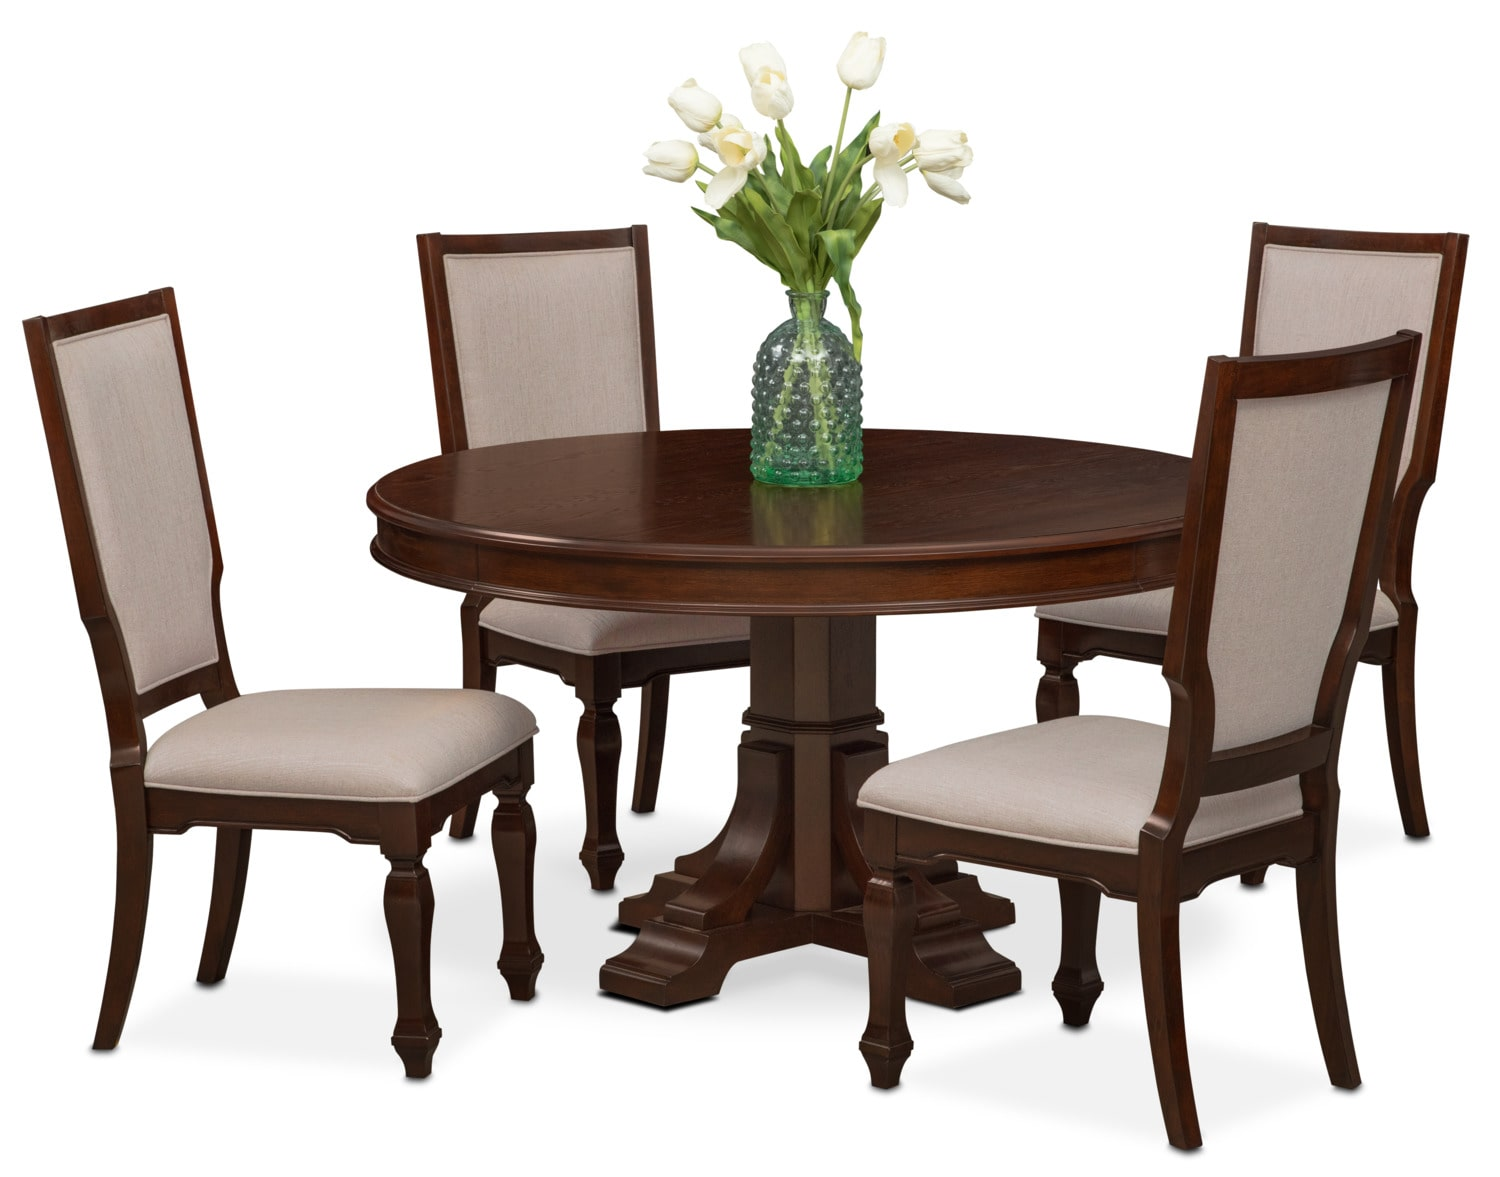 Vienna Round Dining Table And 4 Upholstered Side Chairs Merlot American Signature Furniture